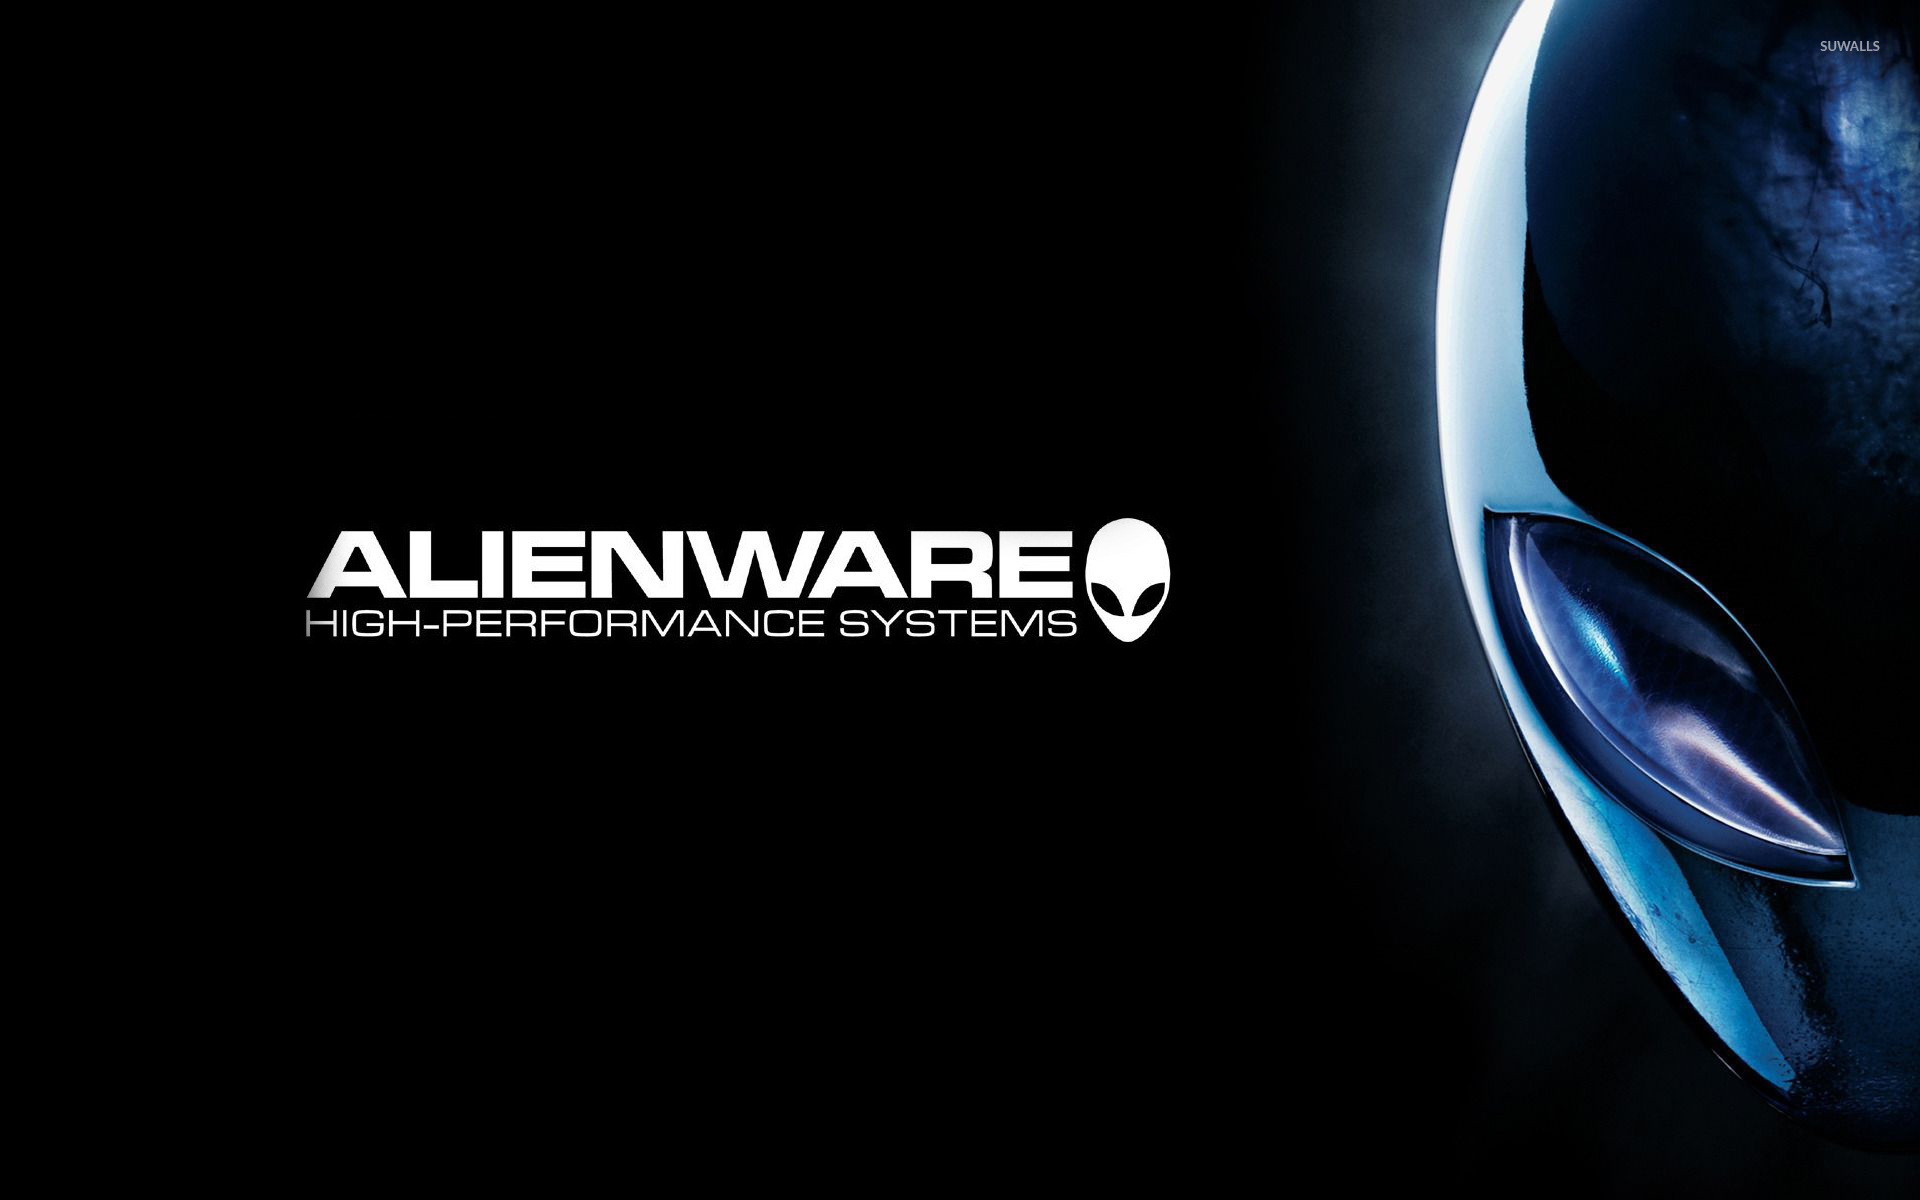 alienware [3] wallpaper - computer wallpapers - #13625